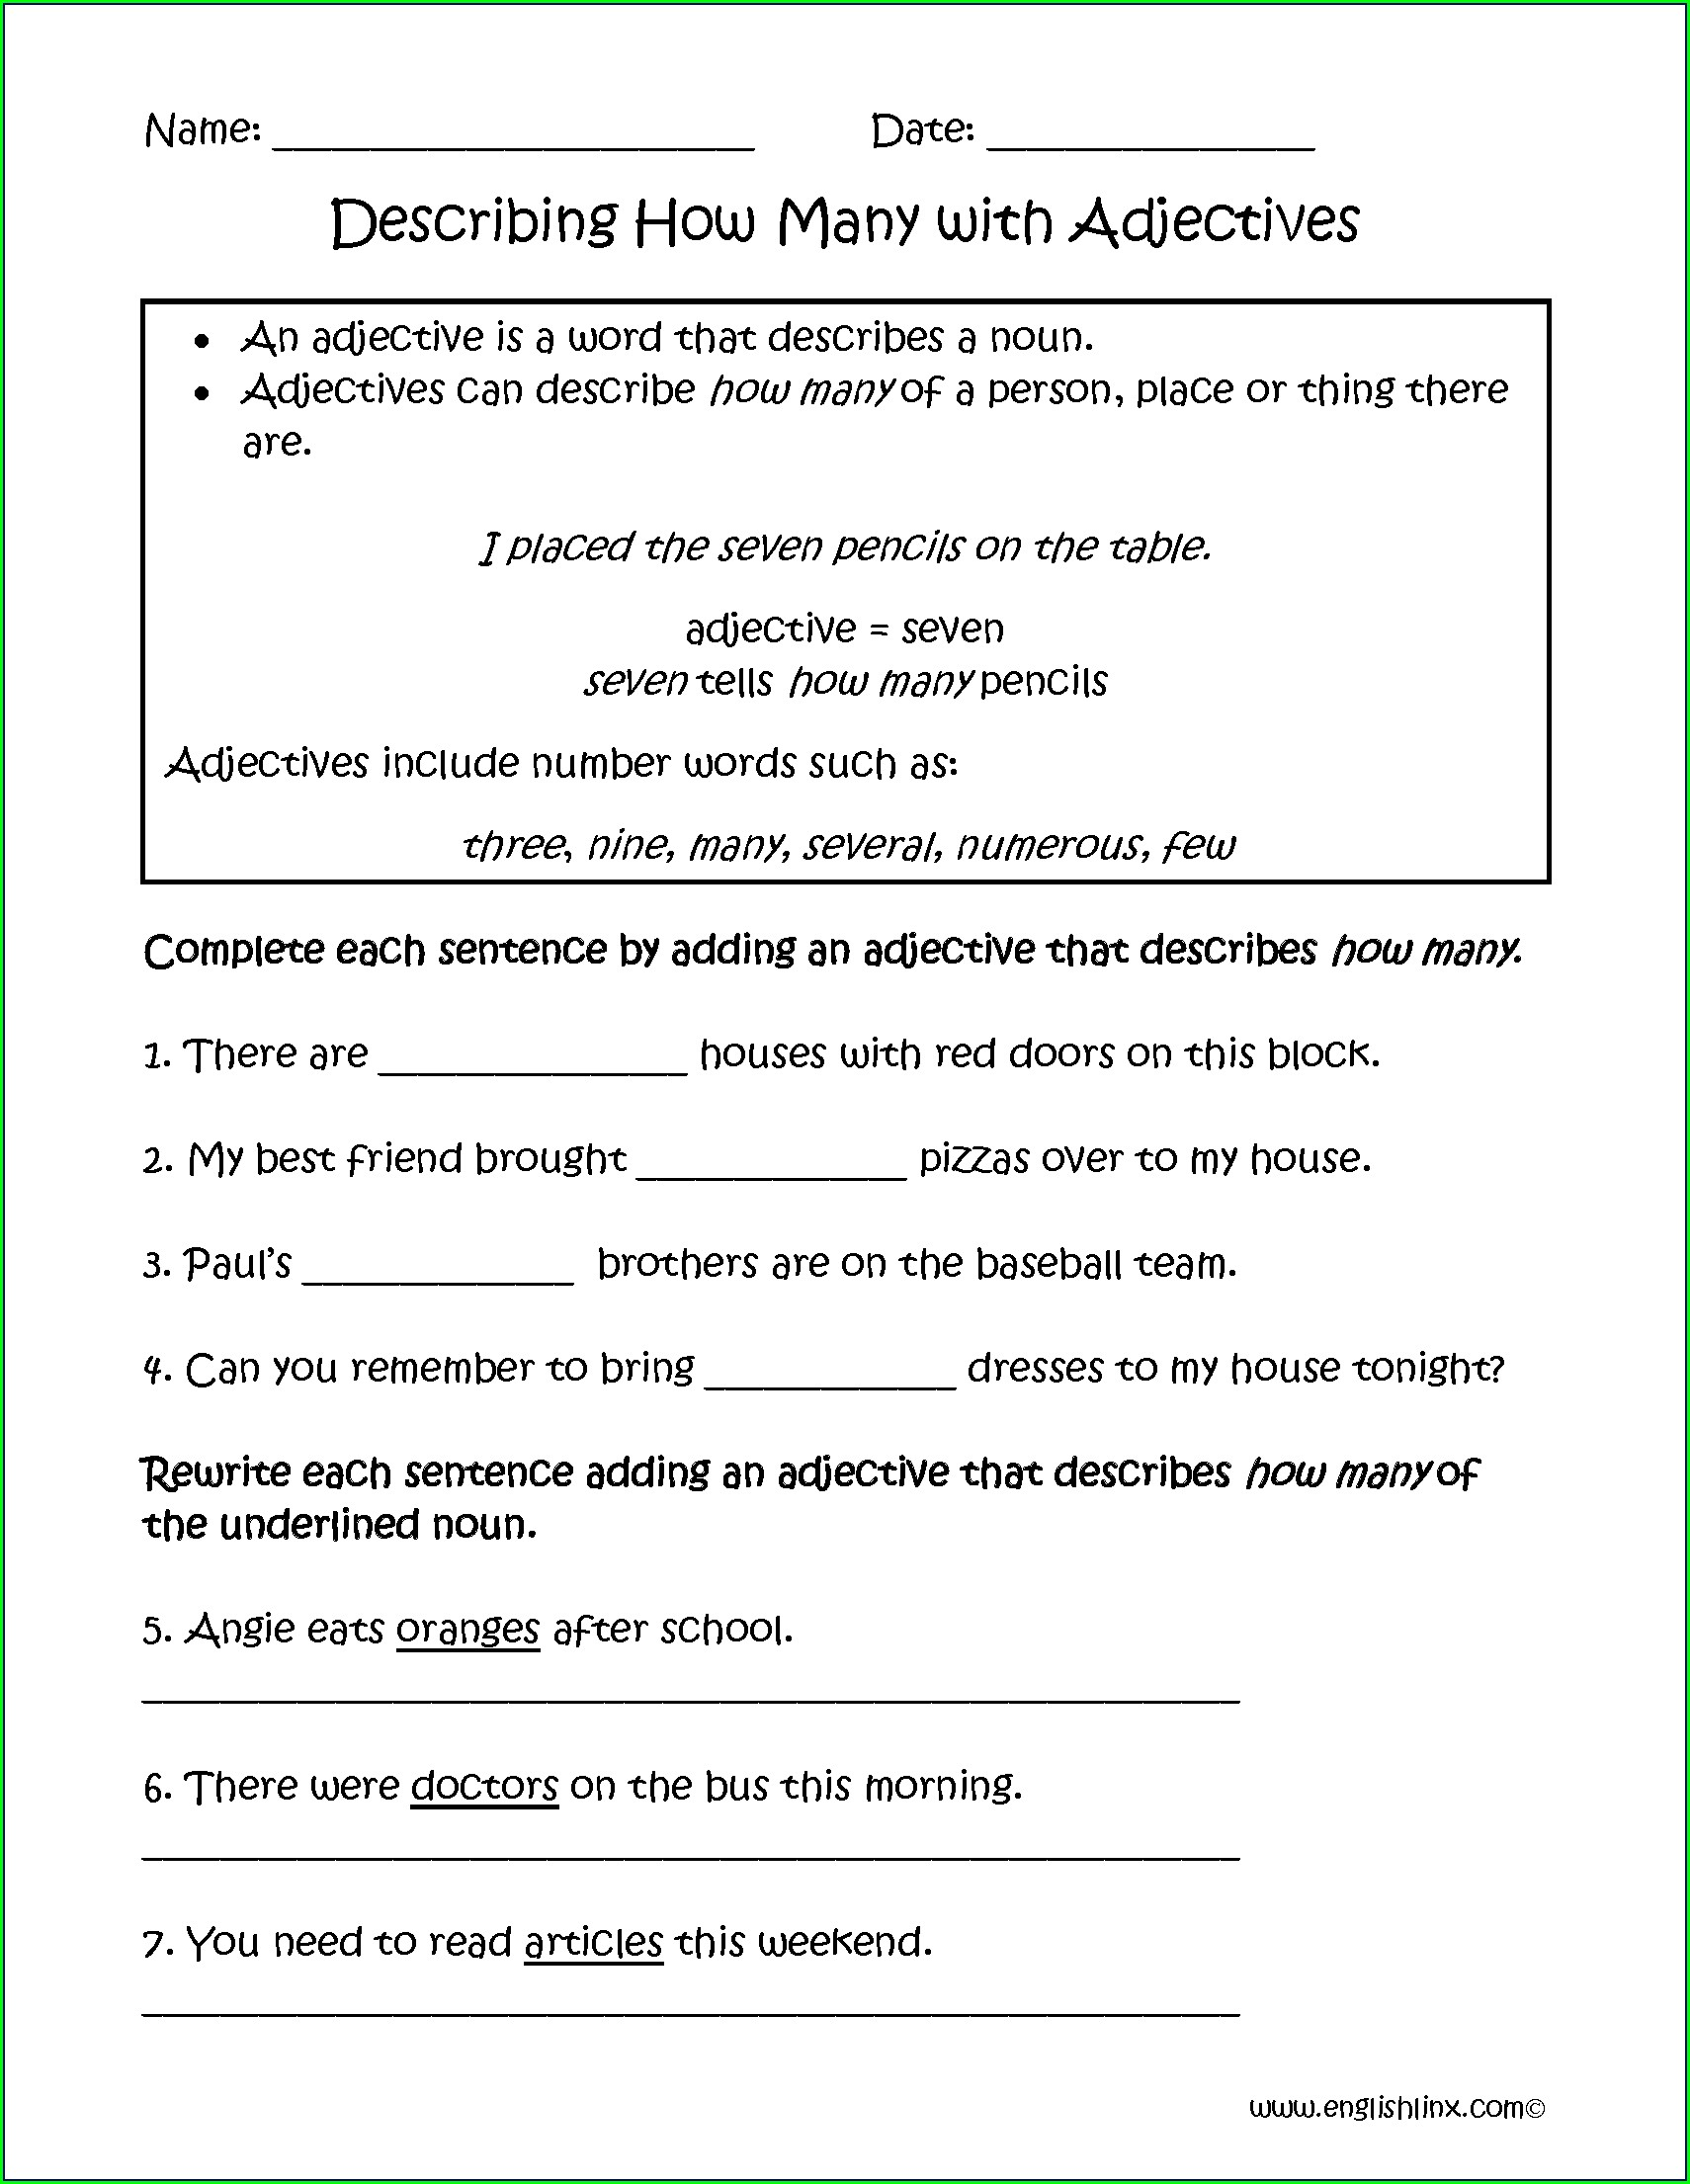 Descriptive Adjectives Worksheet 6th Grade